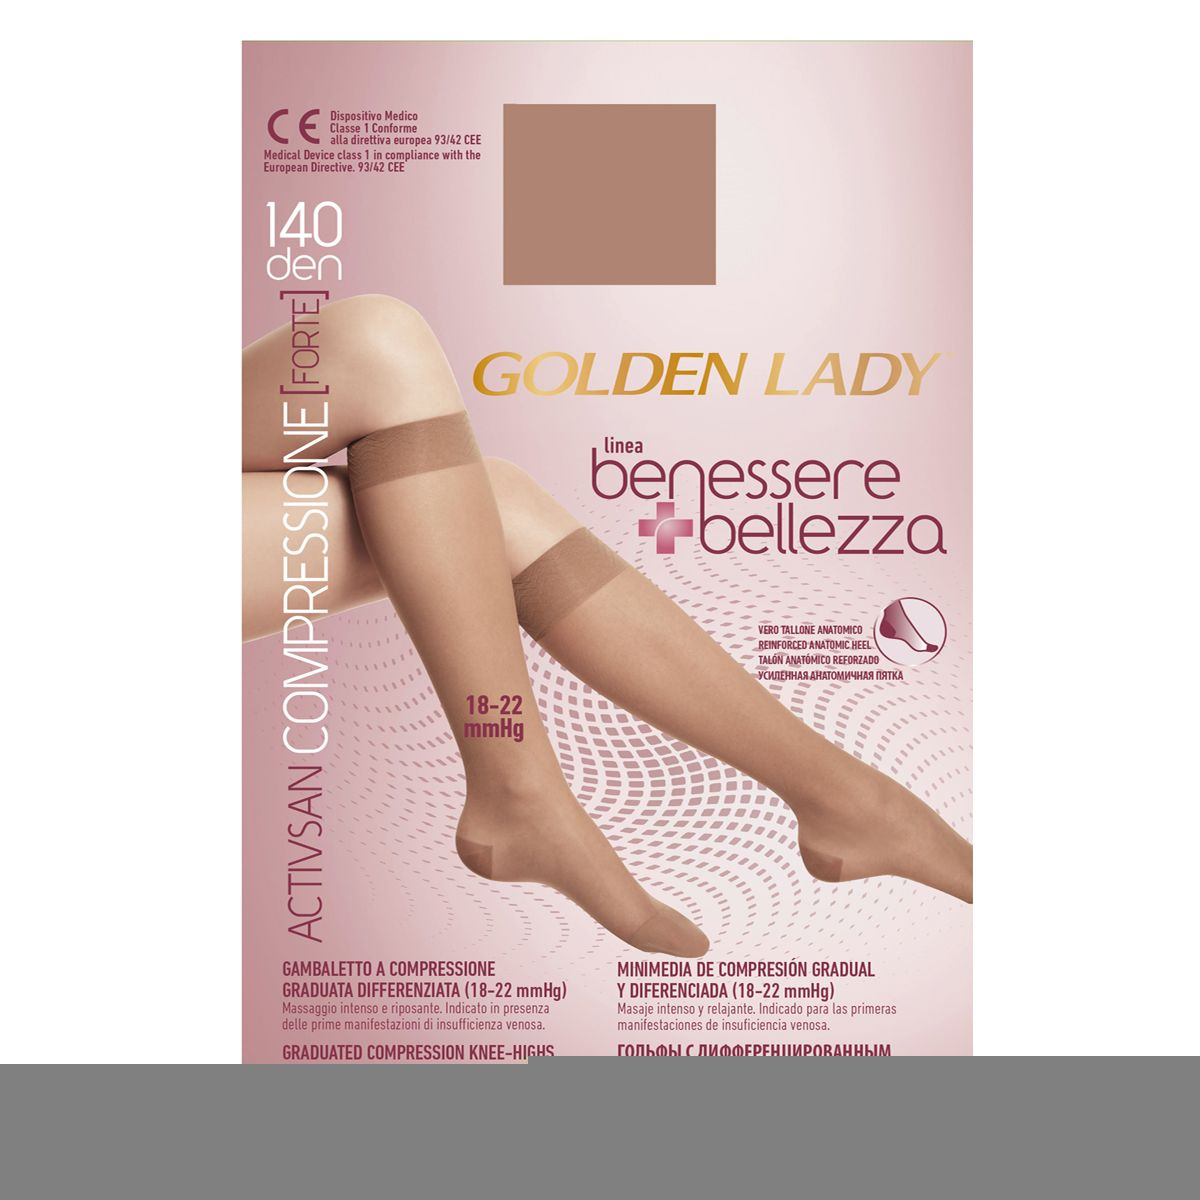 GOLDEN LADY GAMBALETTO BENESSERE /& BELLEZZA 140 DEN COMPRESSIONE GRADUATA